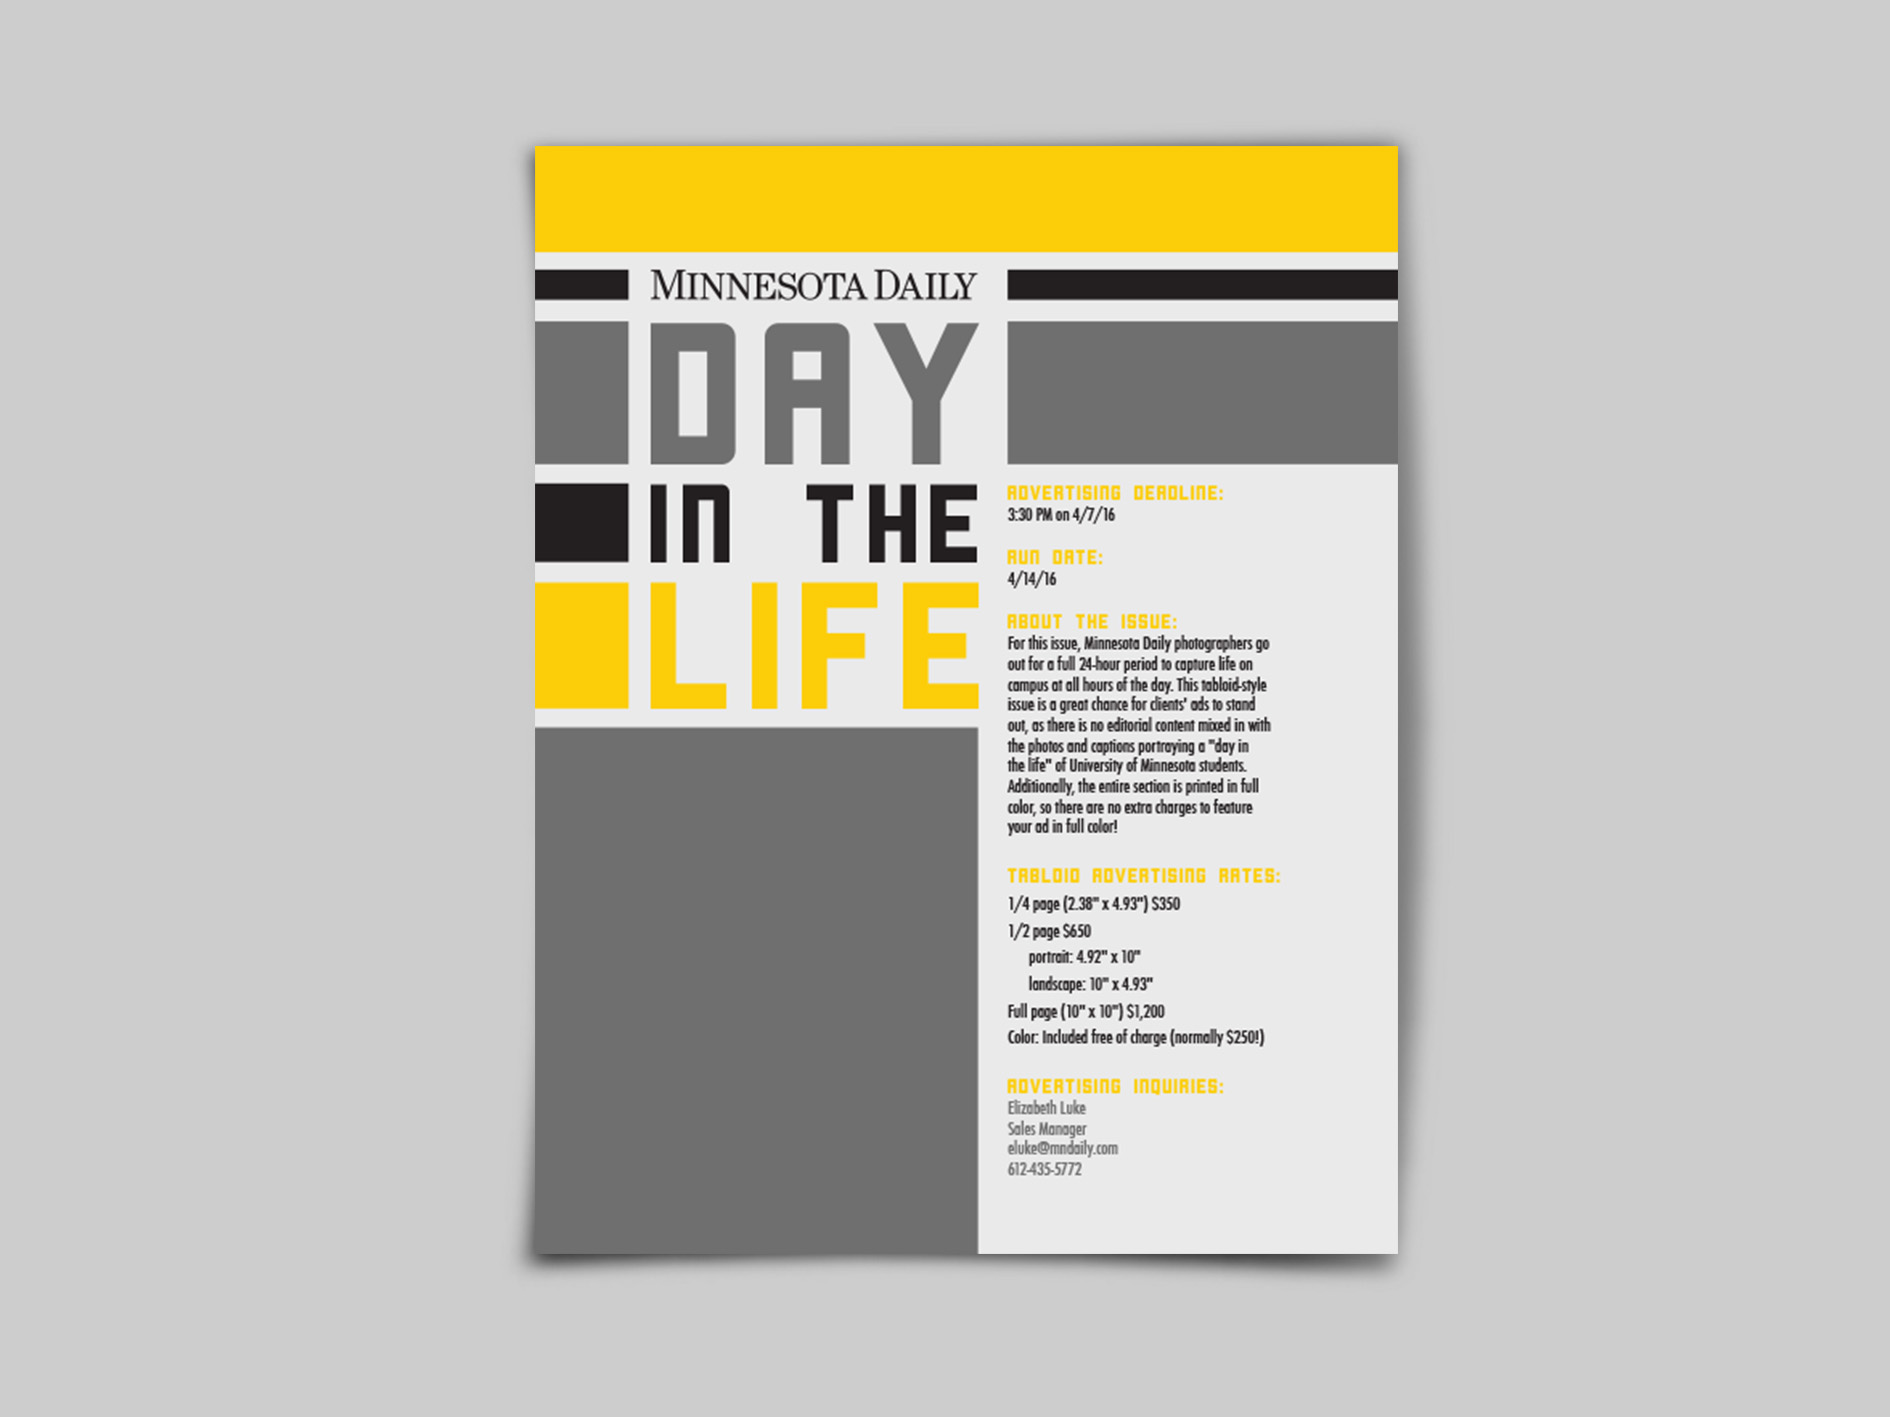 day in the life infosheet mockup.jpg